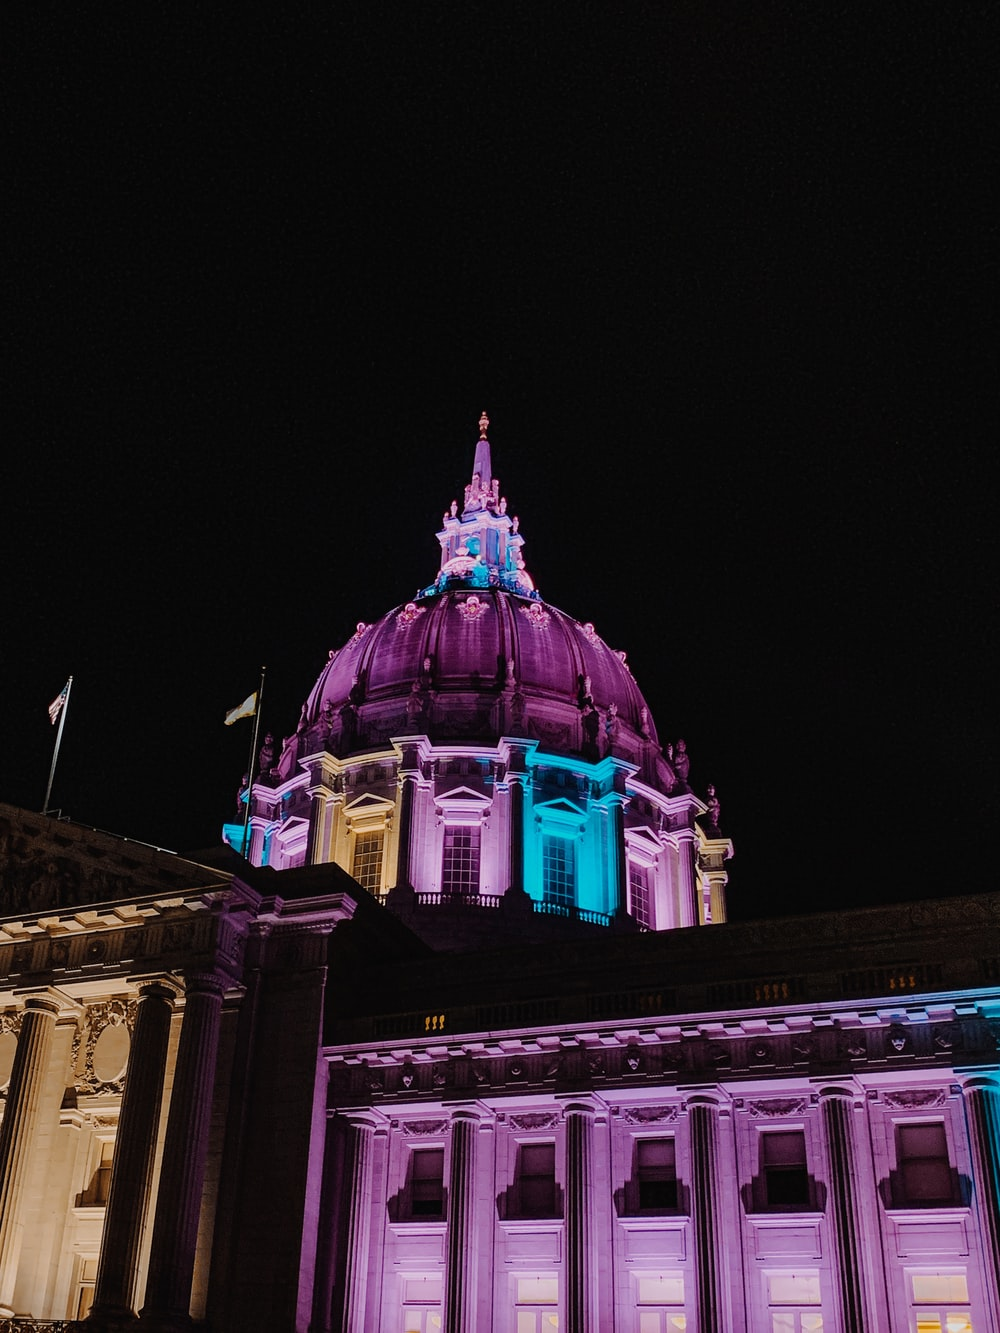 purple lighted dome building at nighttime